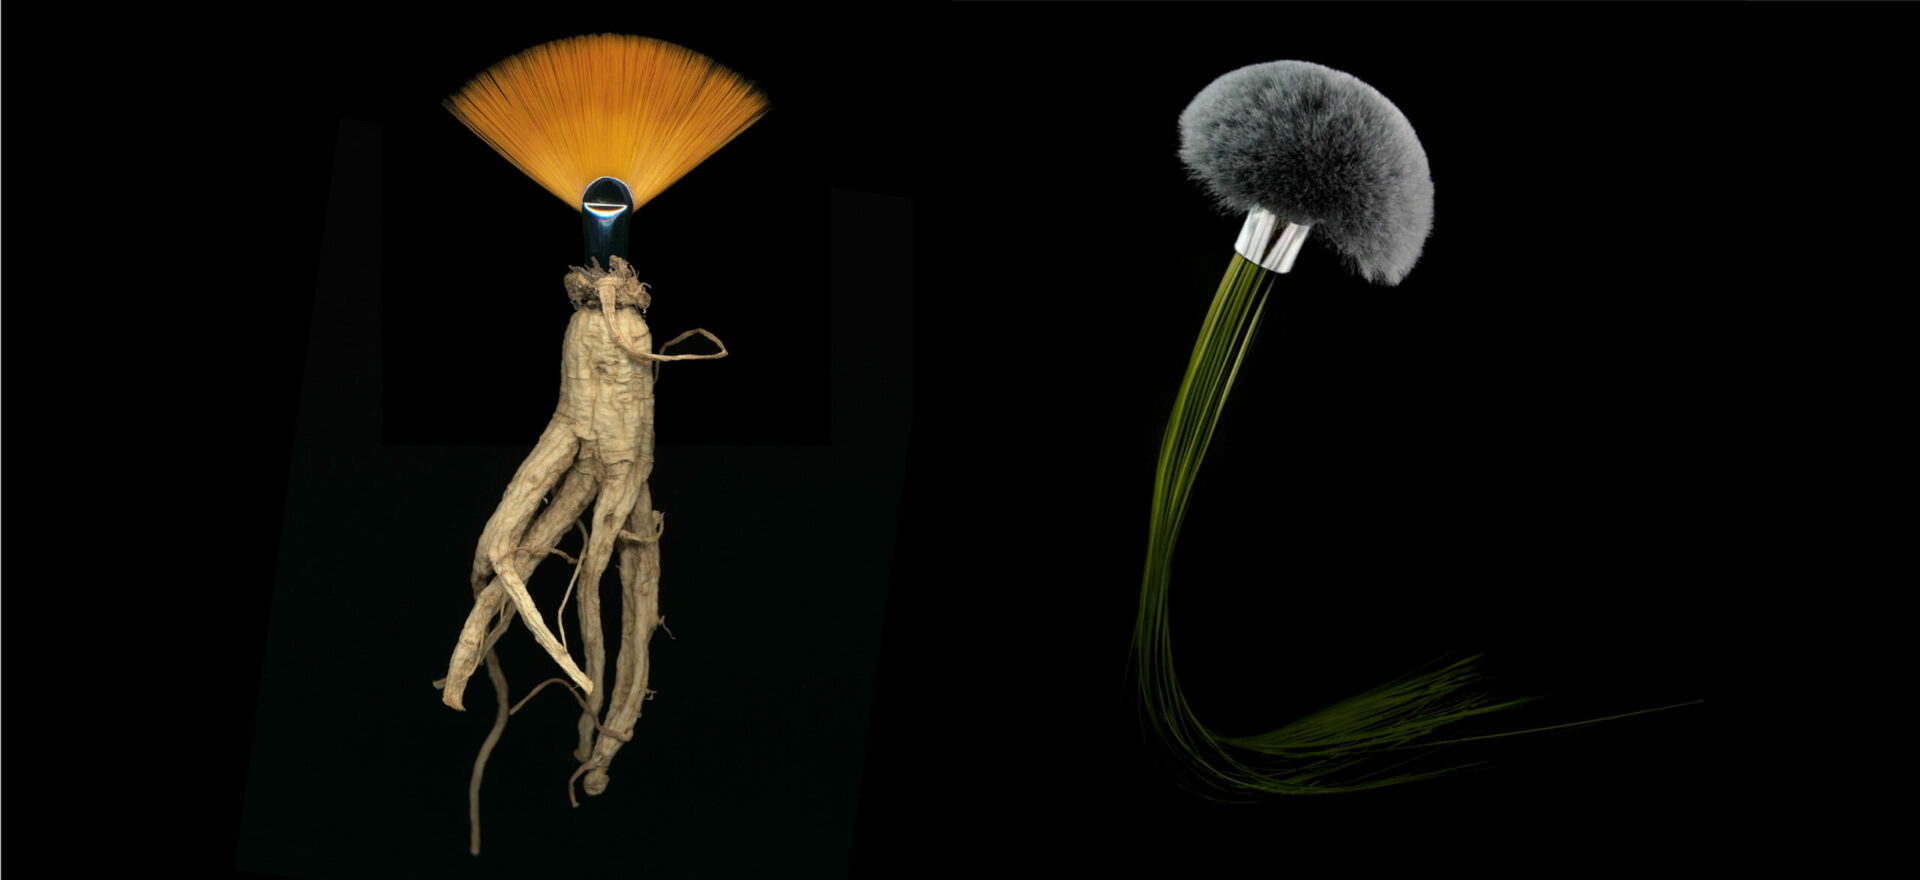 Yuubi brushes_Limited Collection_Mario Trimarchi Design_Products Artworks